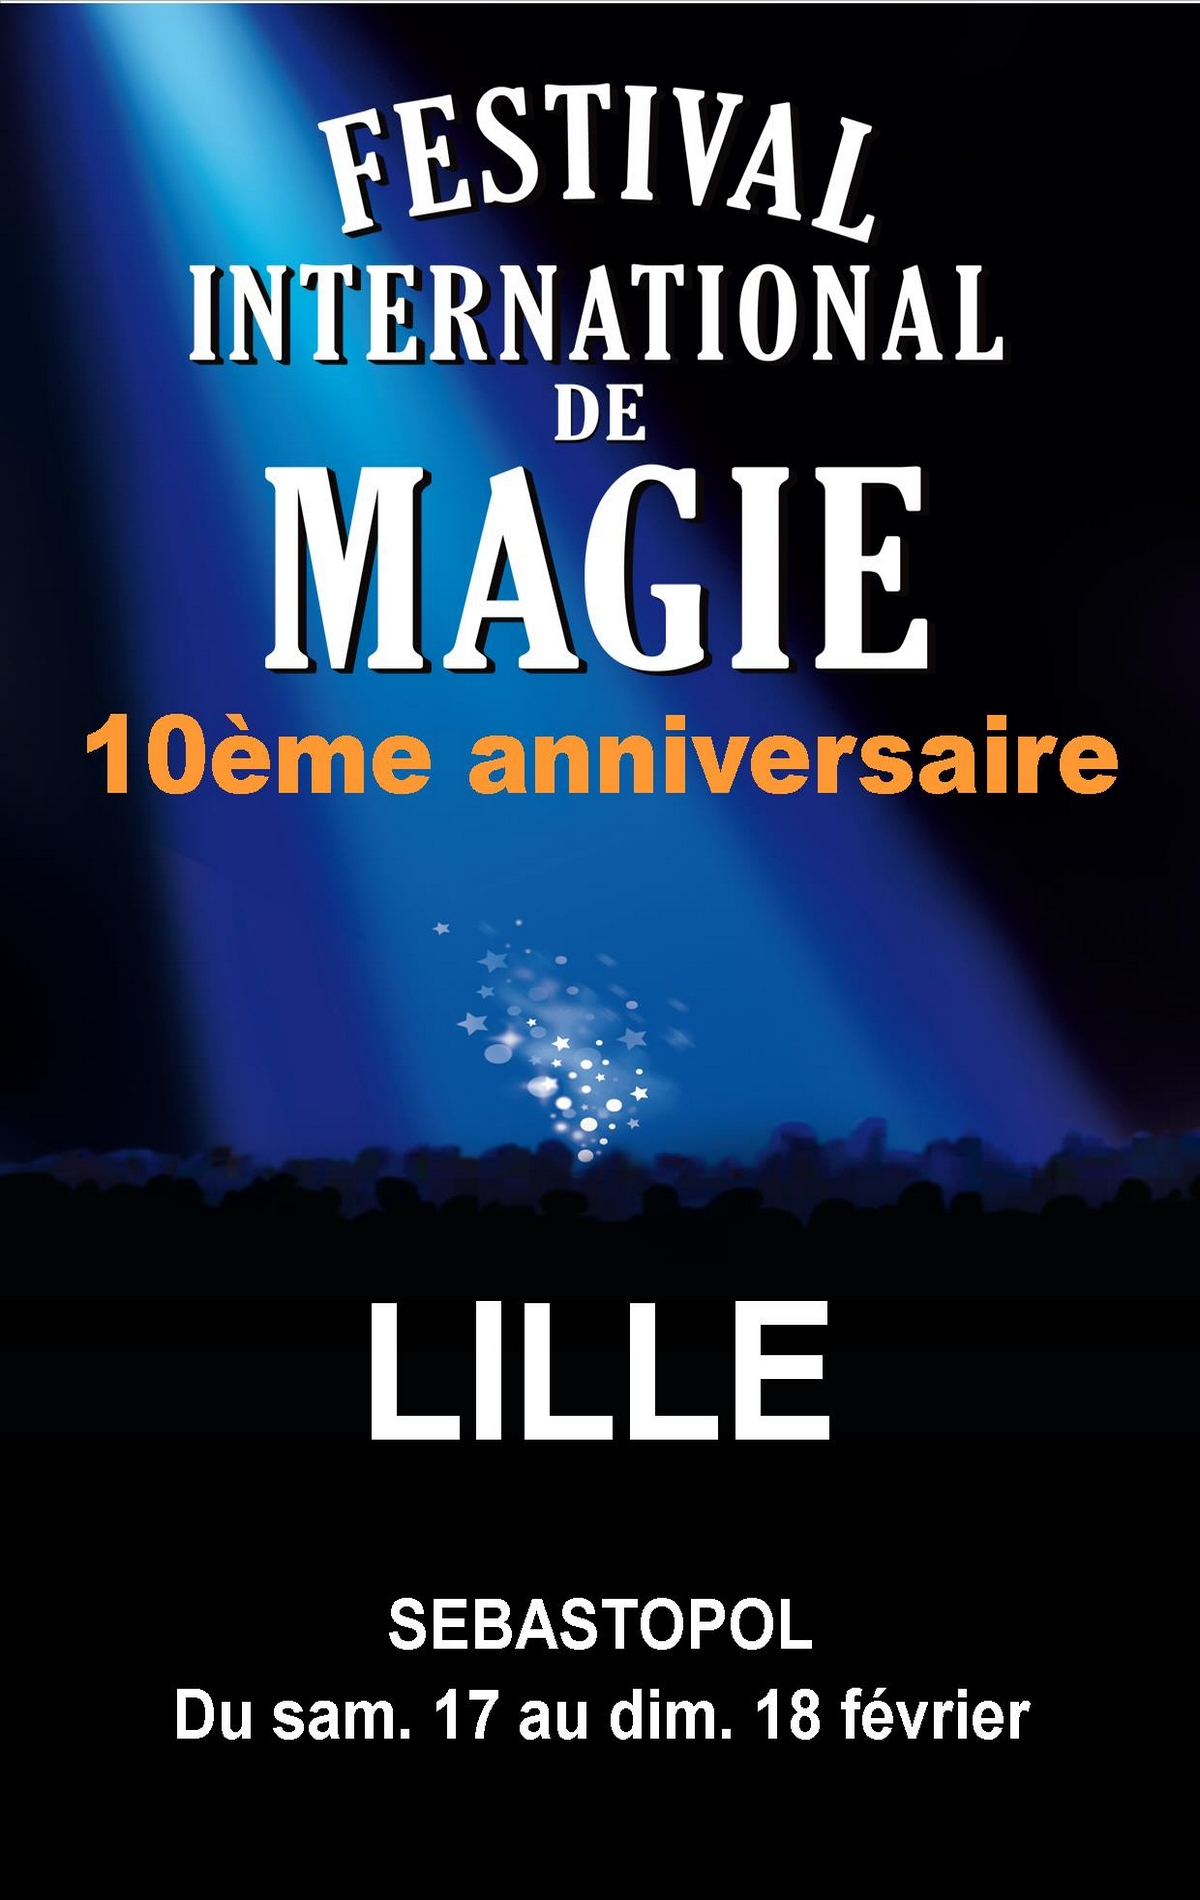 FESTIVAL INTERNATIONAL DE MAGIE : 10EME ANNIVERSAIRE